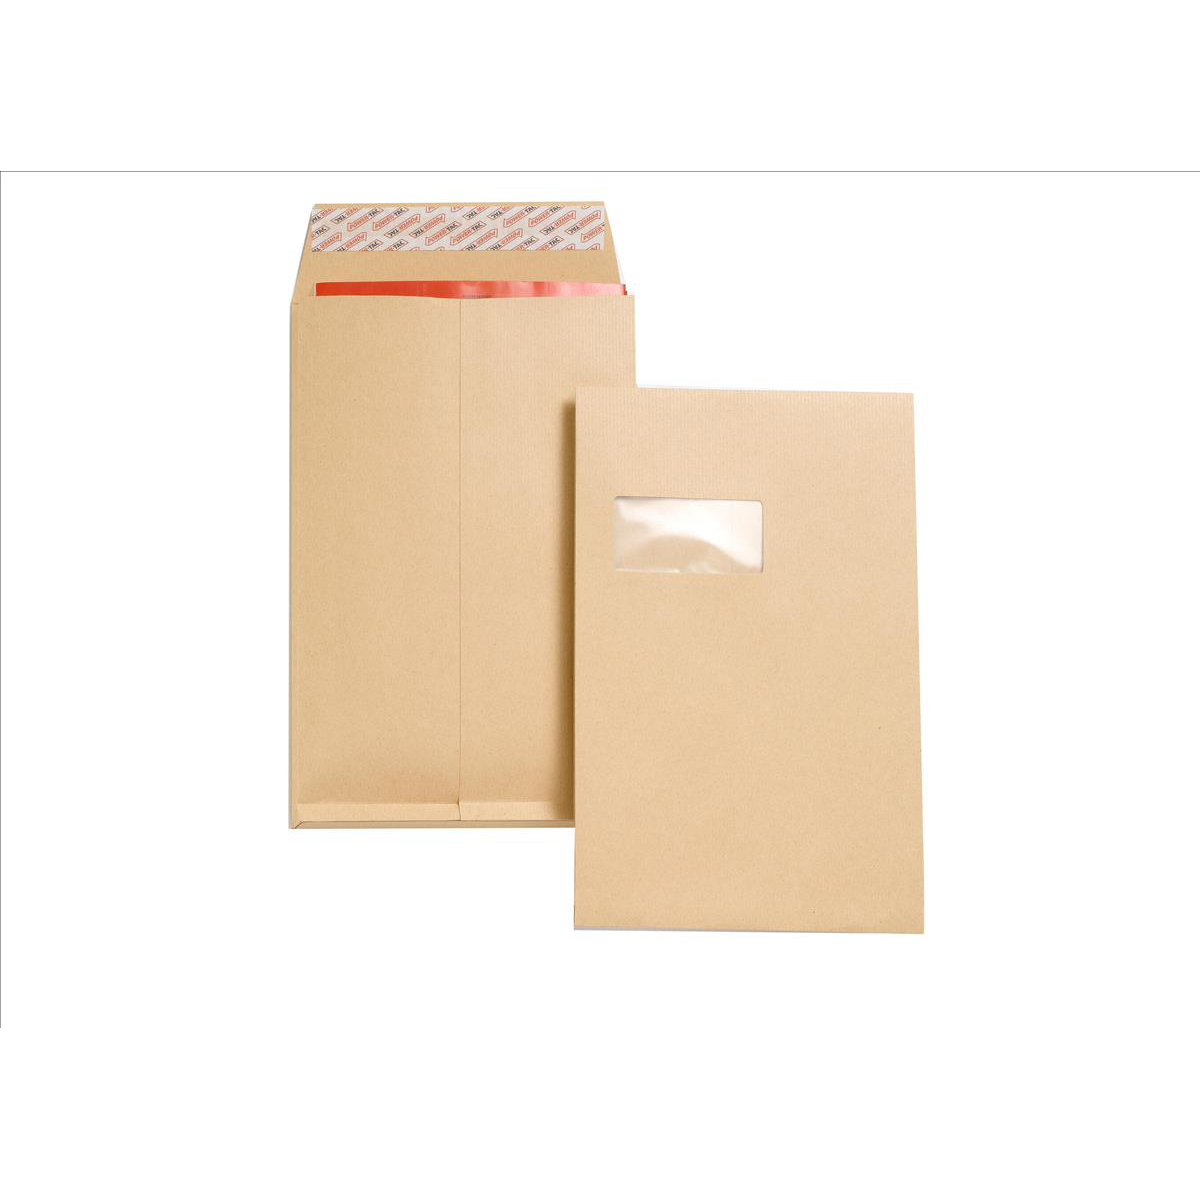 Gusset Envelopes New Guardian Envelopes FSC Peel & Seal Window Gusset 130gsm C4 324x229x25mm Manilla Ref J27366 Pack 100